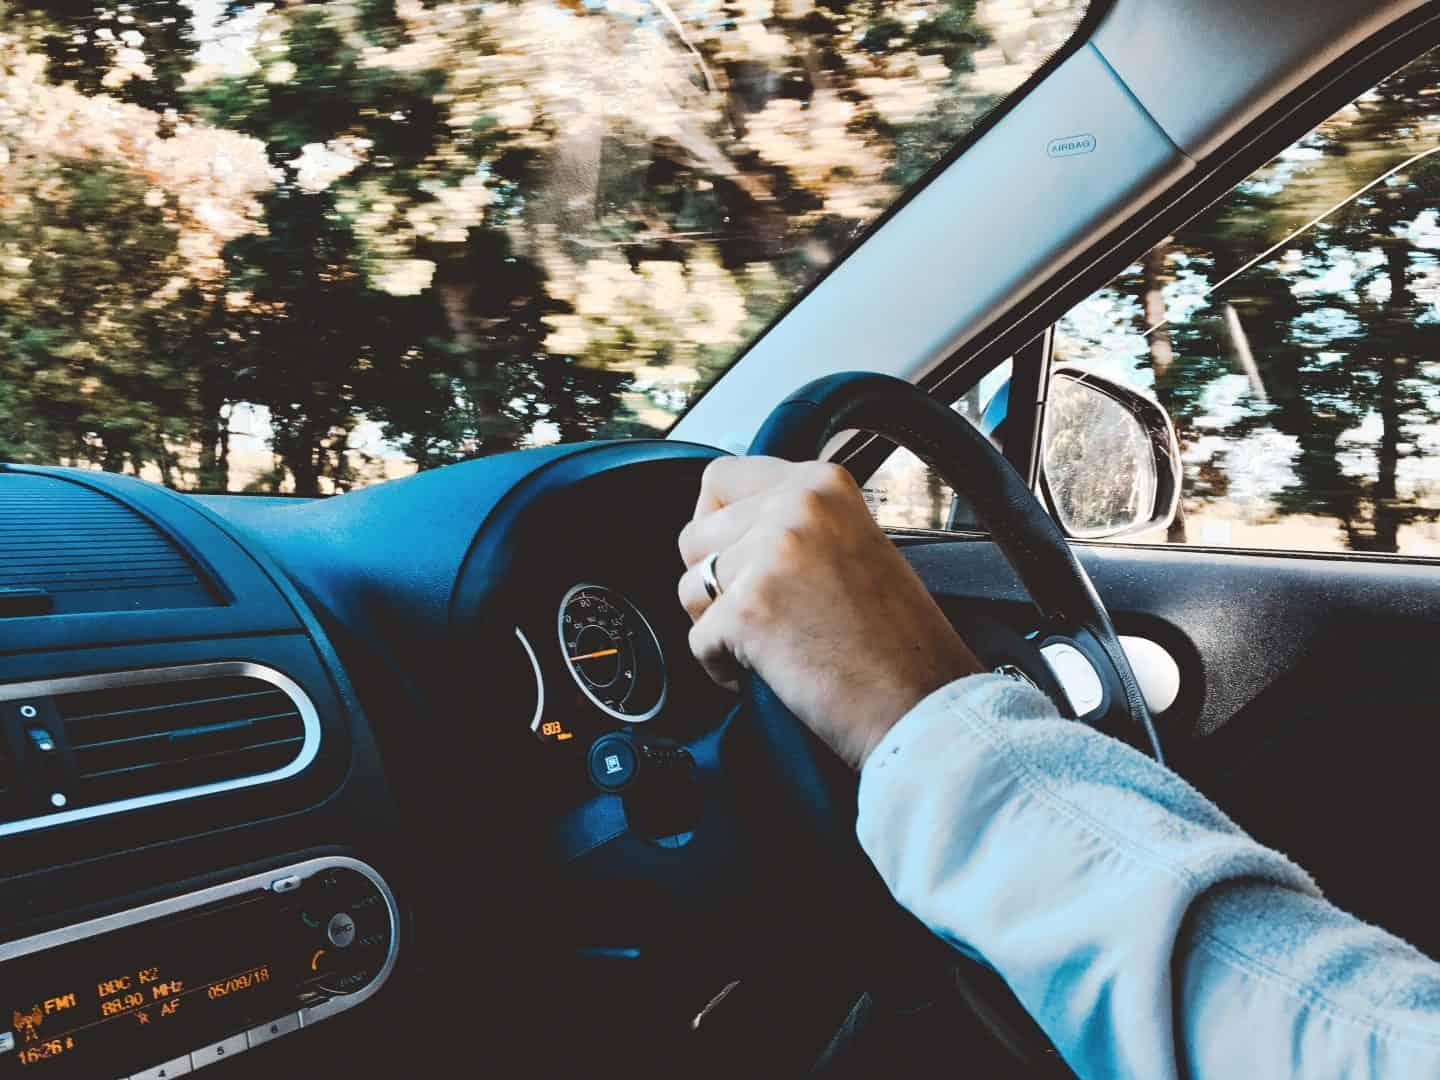 Driving Licence Points, Your Insurance And How To Stay On The Right Side Of Legal This Autumn